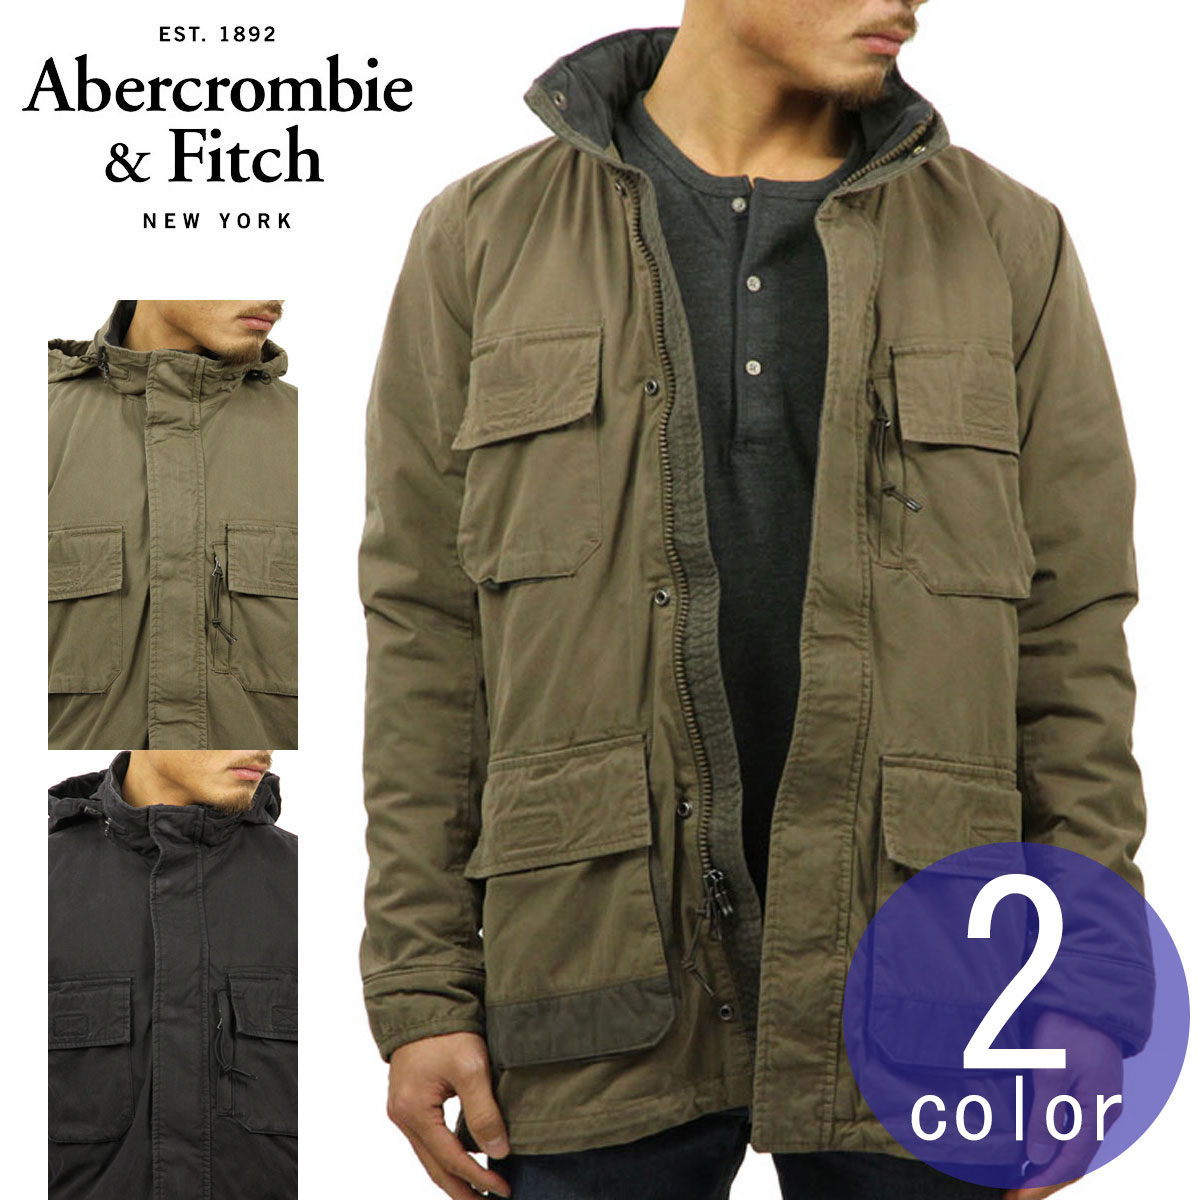 269ffd6a2 Military jacket UTILITY PARKA JACKET with the ABBA black outer men's  regular article Abercrombie & Fitch jacket food